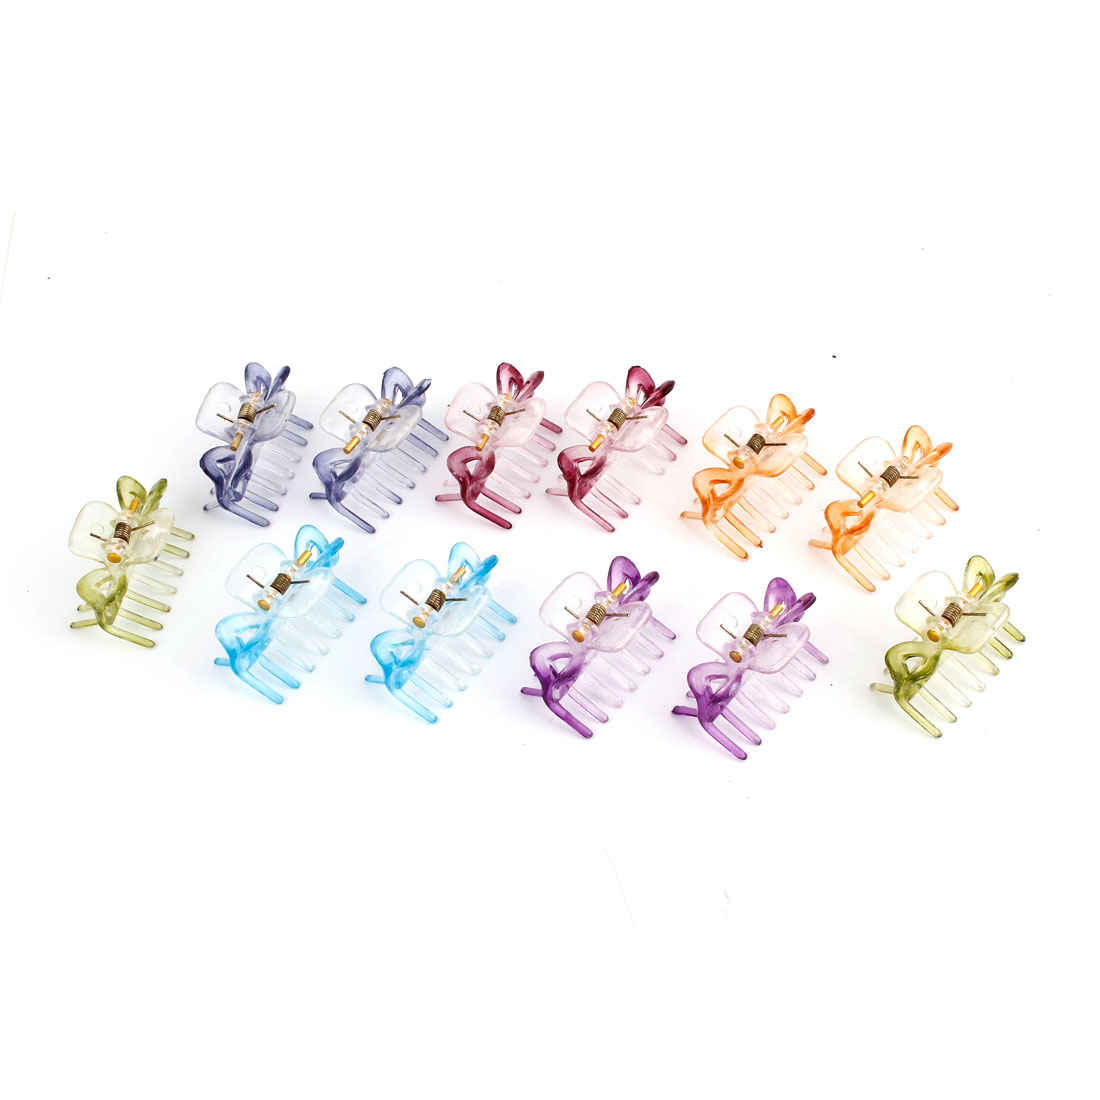 12Pcs Assorted Color Spring Loaded Plastic Double Teeth Hair Claw Clip Comb for Woman